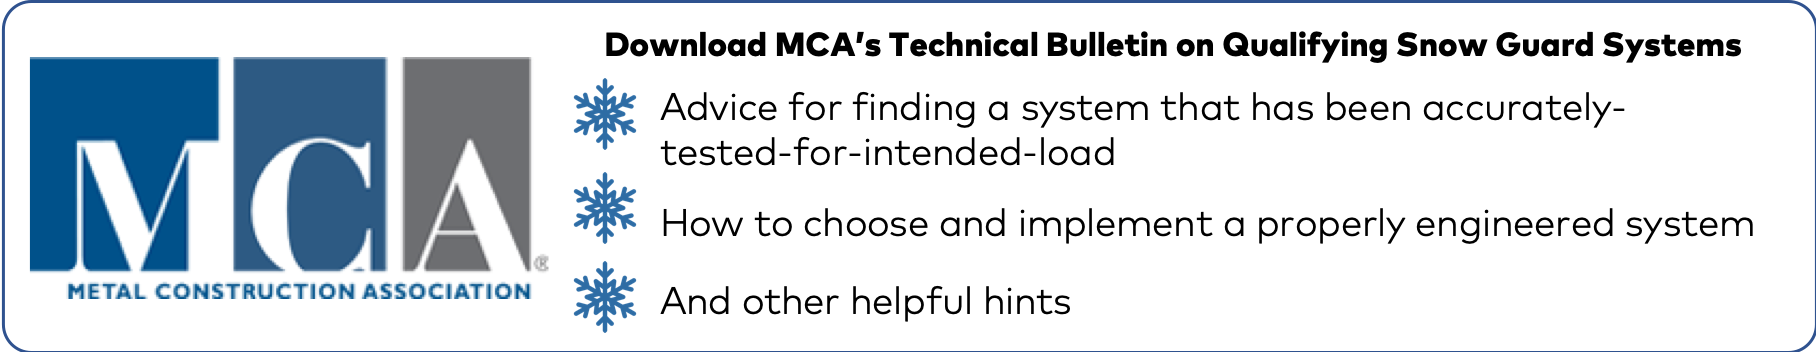 Download MCA's Technical Bulletin on Snow Guards CTA Button - S-5!